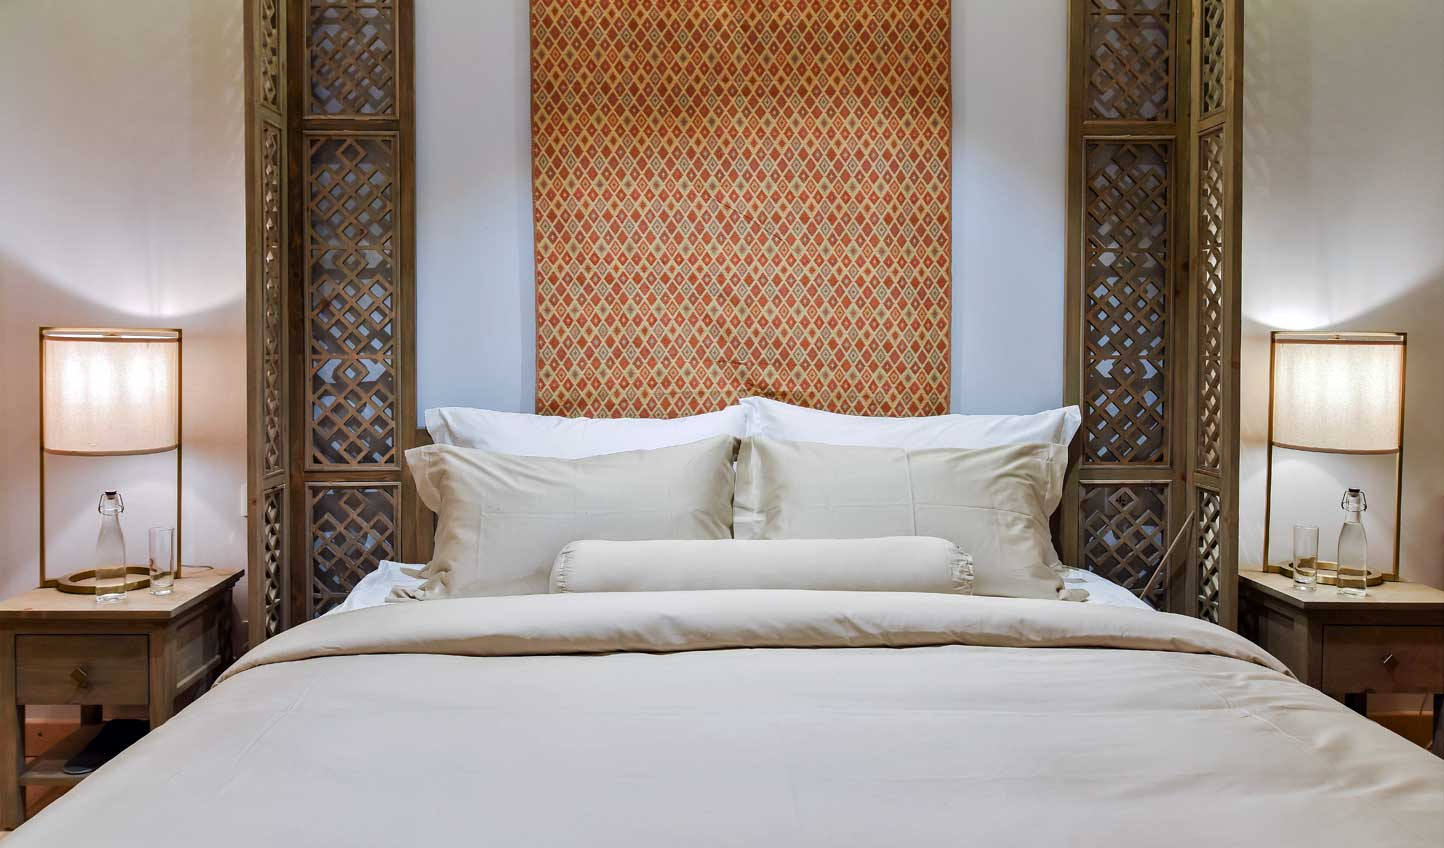 Retreat to your own private sanctuary for a peaceful night's sleep